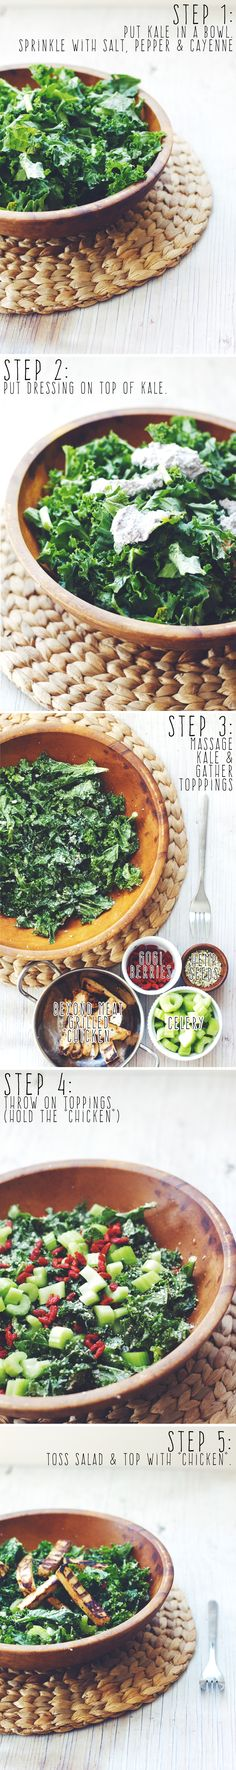 (Basic)ally Perfect Kale Salad ||| Brewing Happiness #BeyondChicken